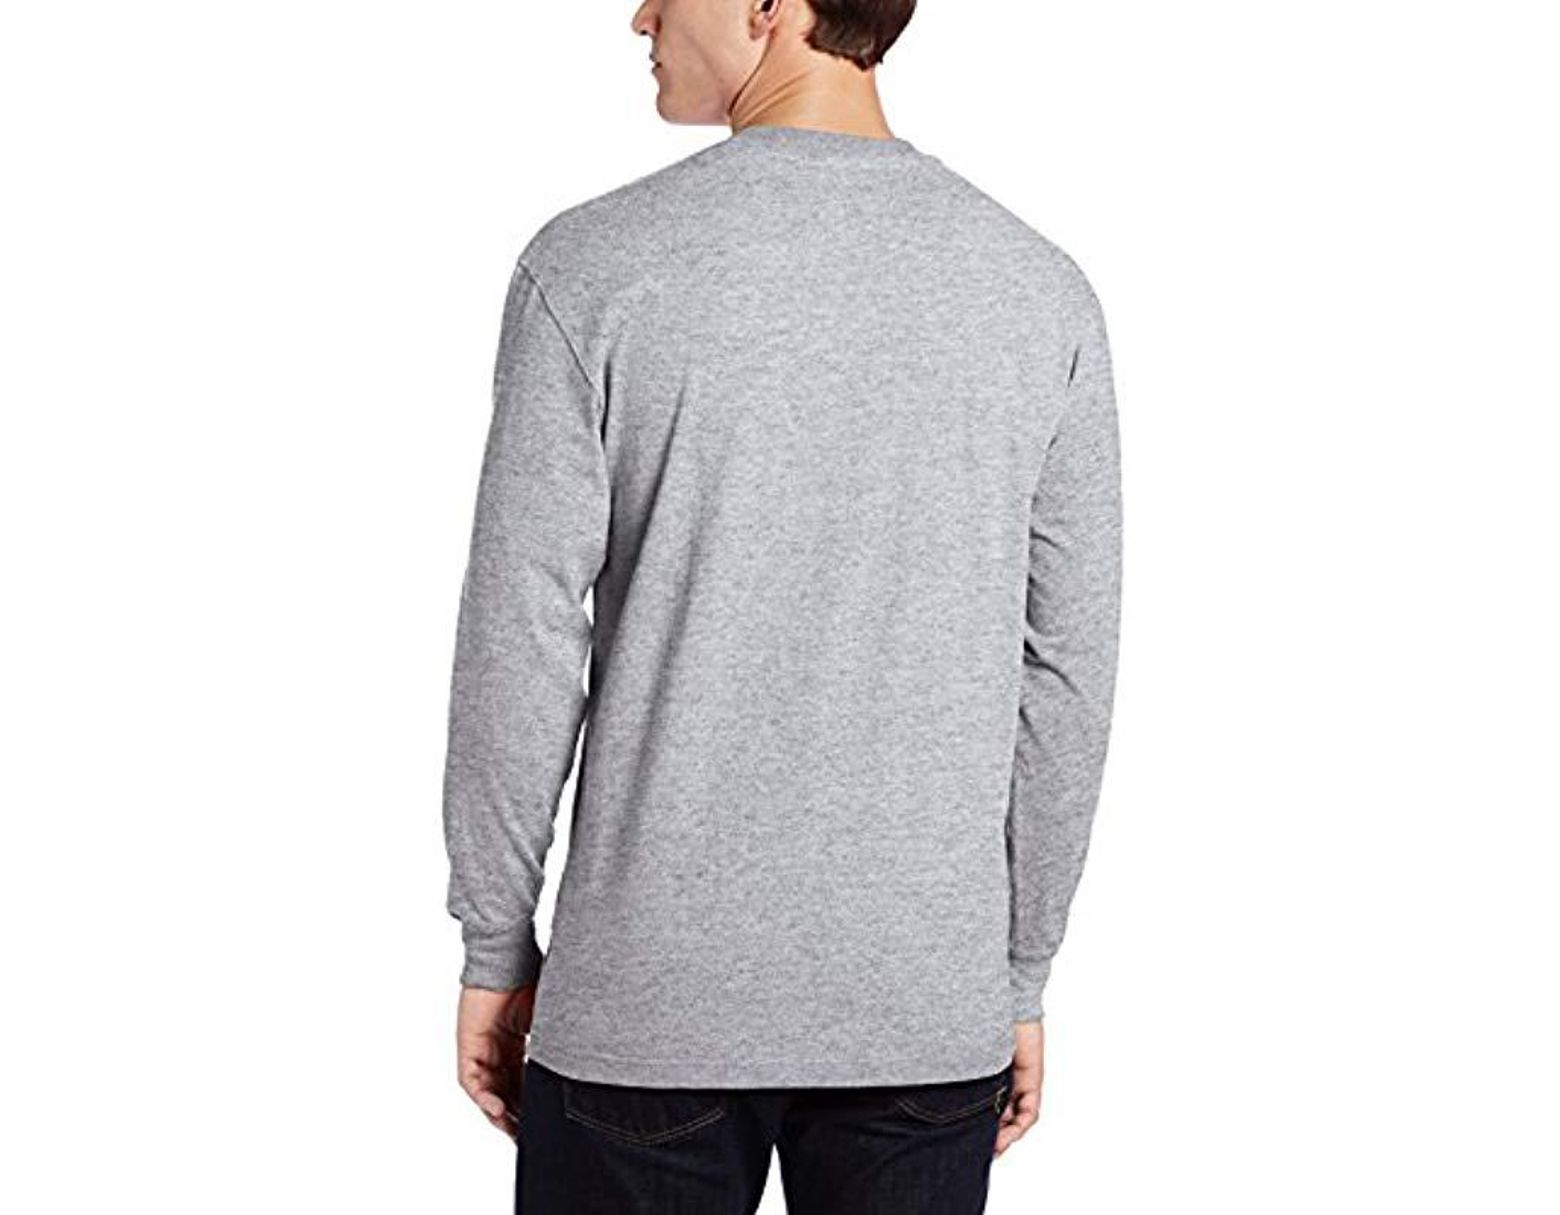 da5e13e8adc0 Dickies Big-tall Long-sleeve Heavyweight Henley in Gray for Men - Save 46%  - Lyst